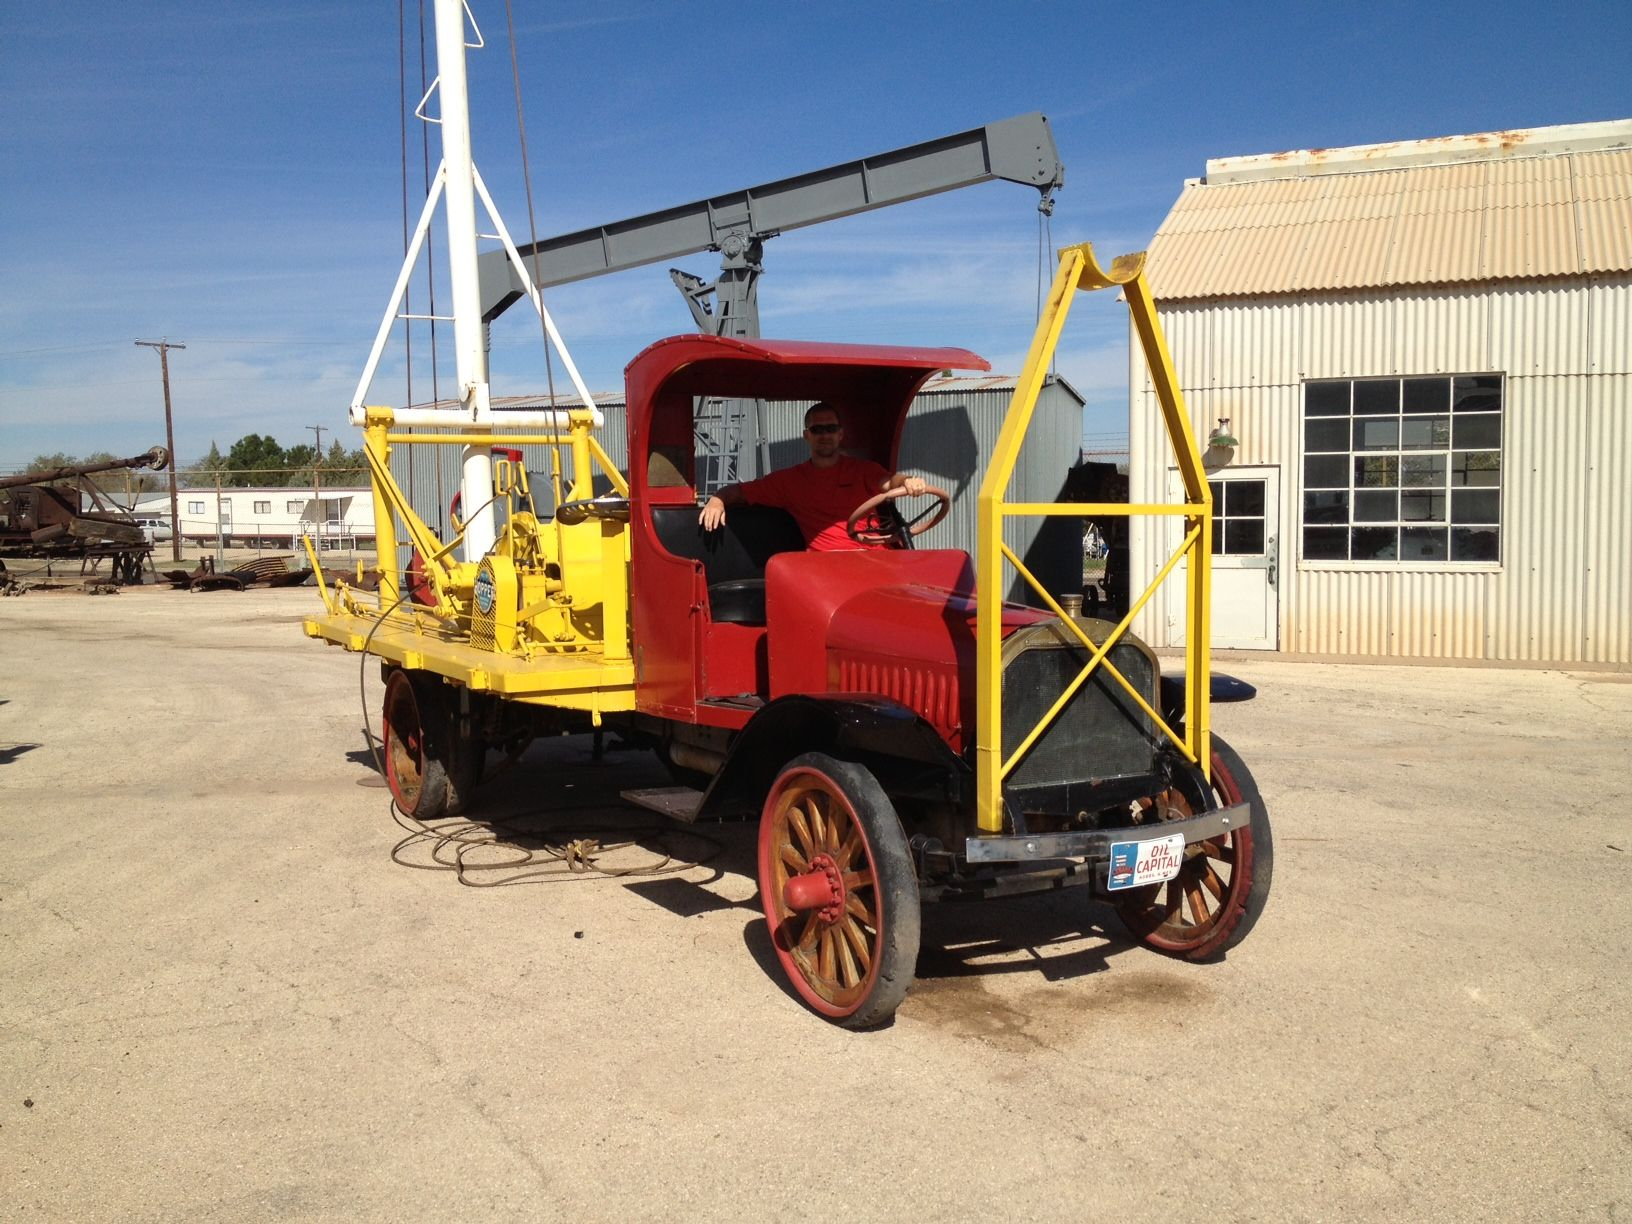 Wireline Field Engineer Odessa Tx: An Old Oilfield Truck On Display Outside At The 2012 PBIOS